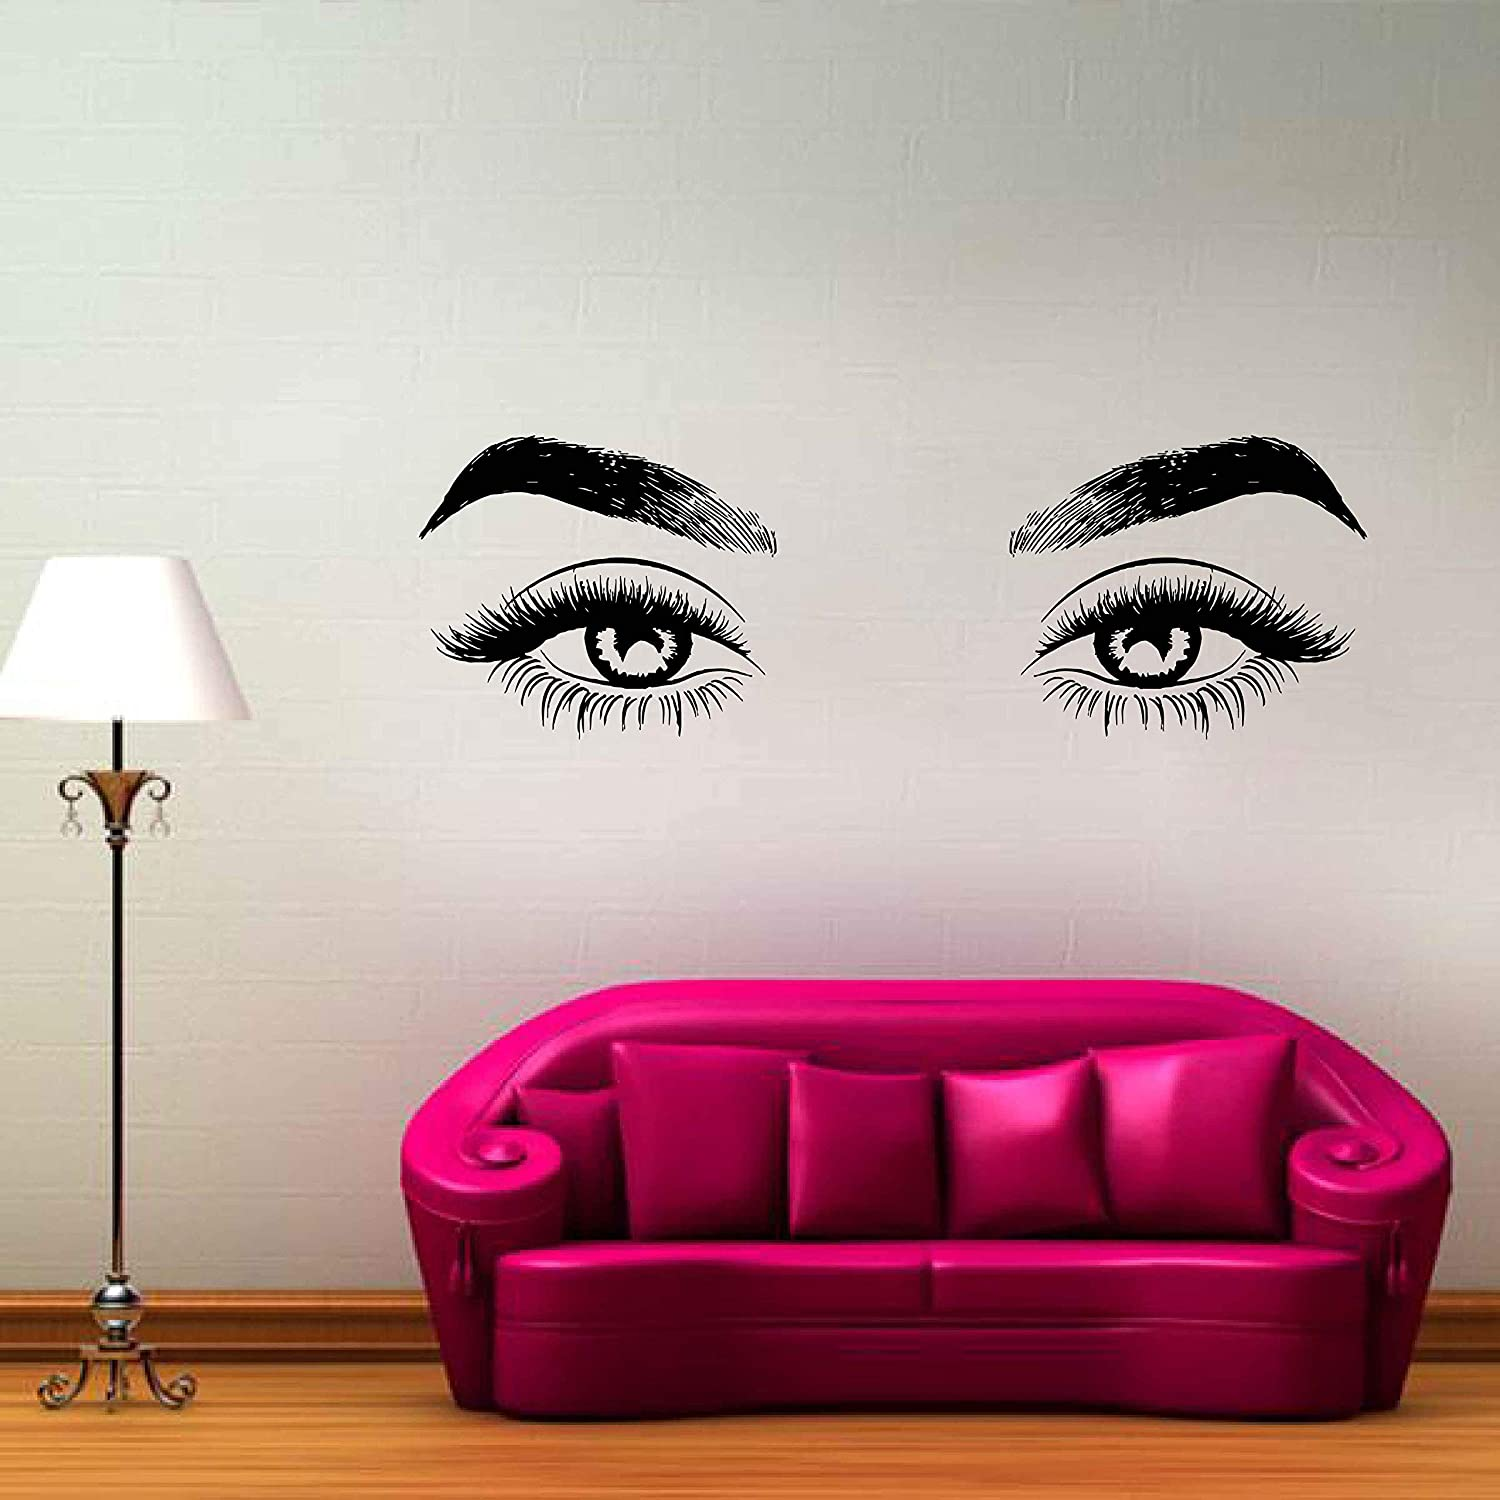 Amazon Com Eyes Wall Decals For Bedroom Eyes Wall Decal Eyelashes Wall Decoration Eyelash Decals For Cars Small Eyelash Stickers Art Makeup Wall Stickers Ik3363 Handmade